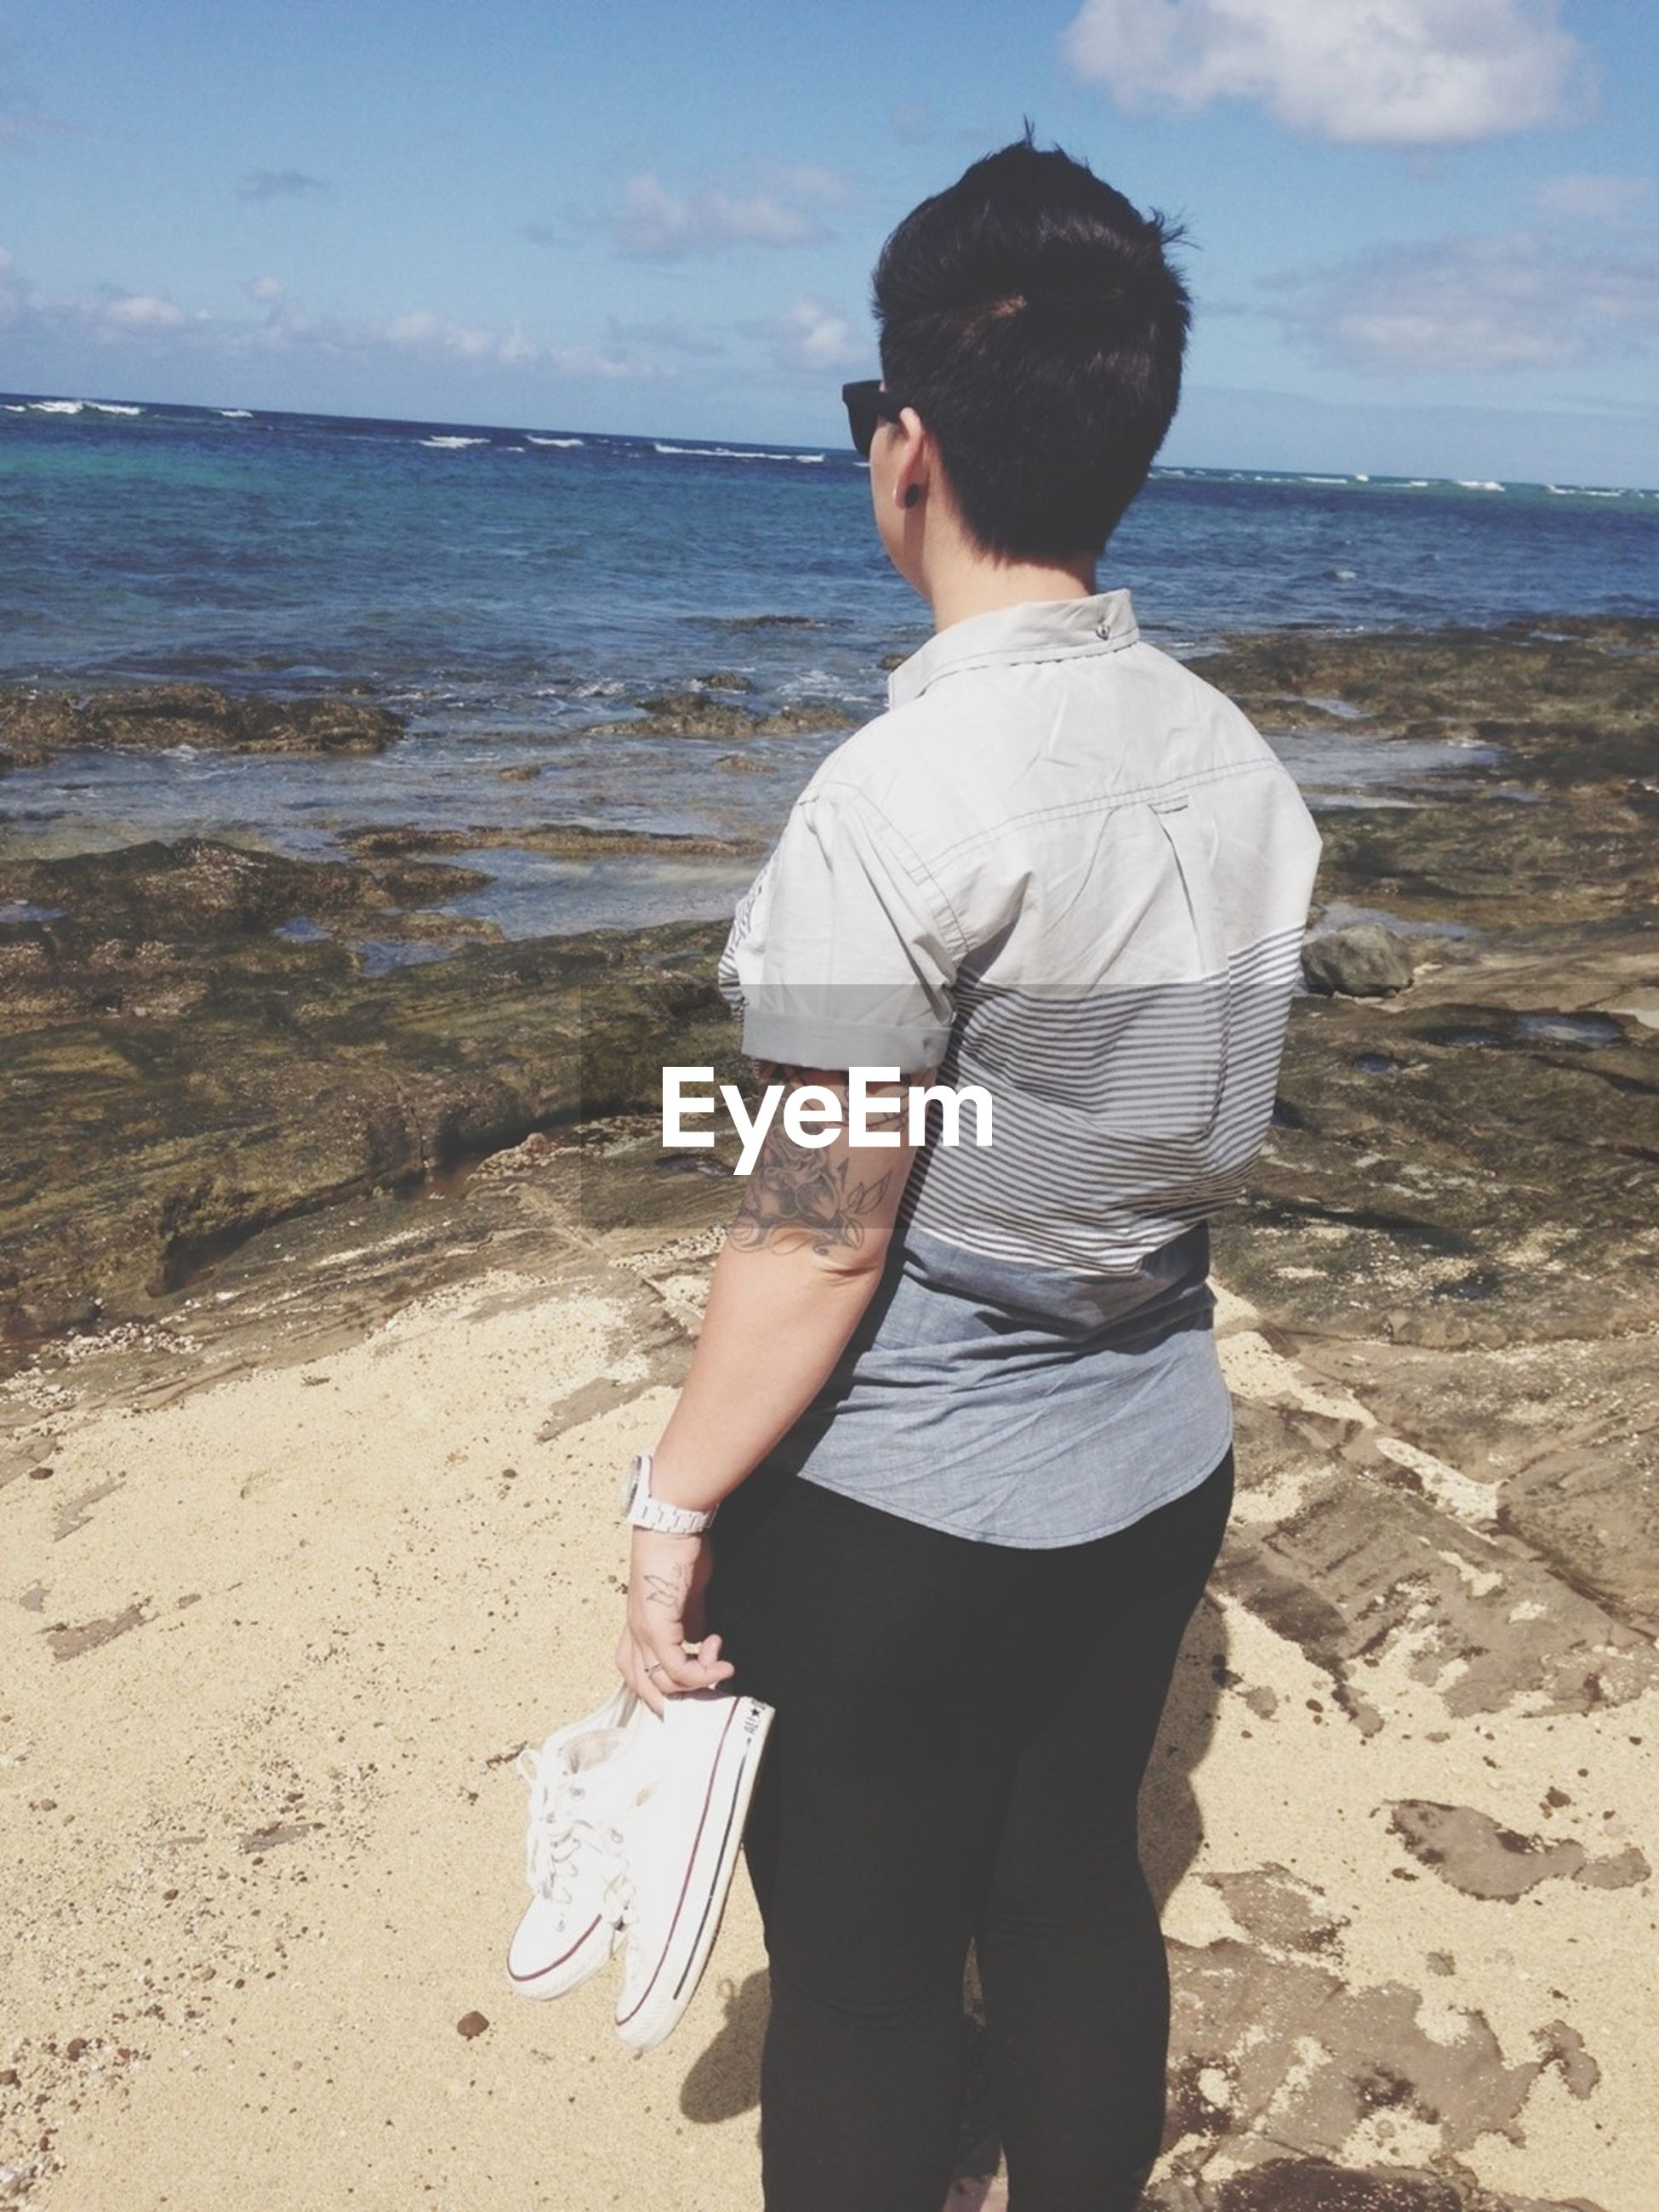 water, casual clothing, sea, lifestyles, standing, sky, beach, leisure activity, young adult, shore, full length, person, three quarter length, rear view, sunglasses, nature, horizon over water, outdoors